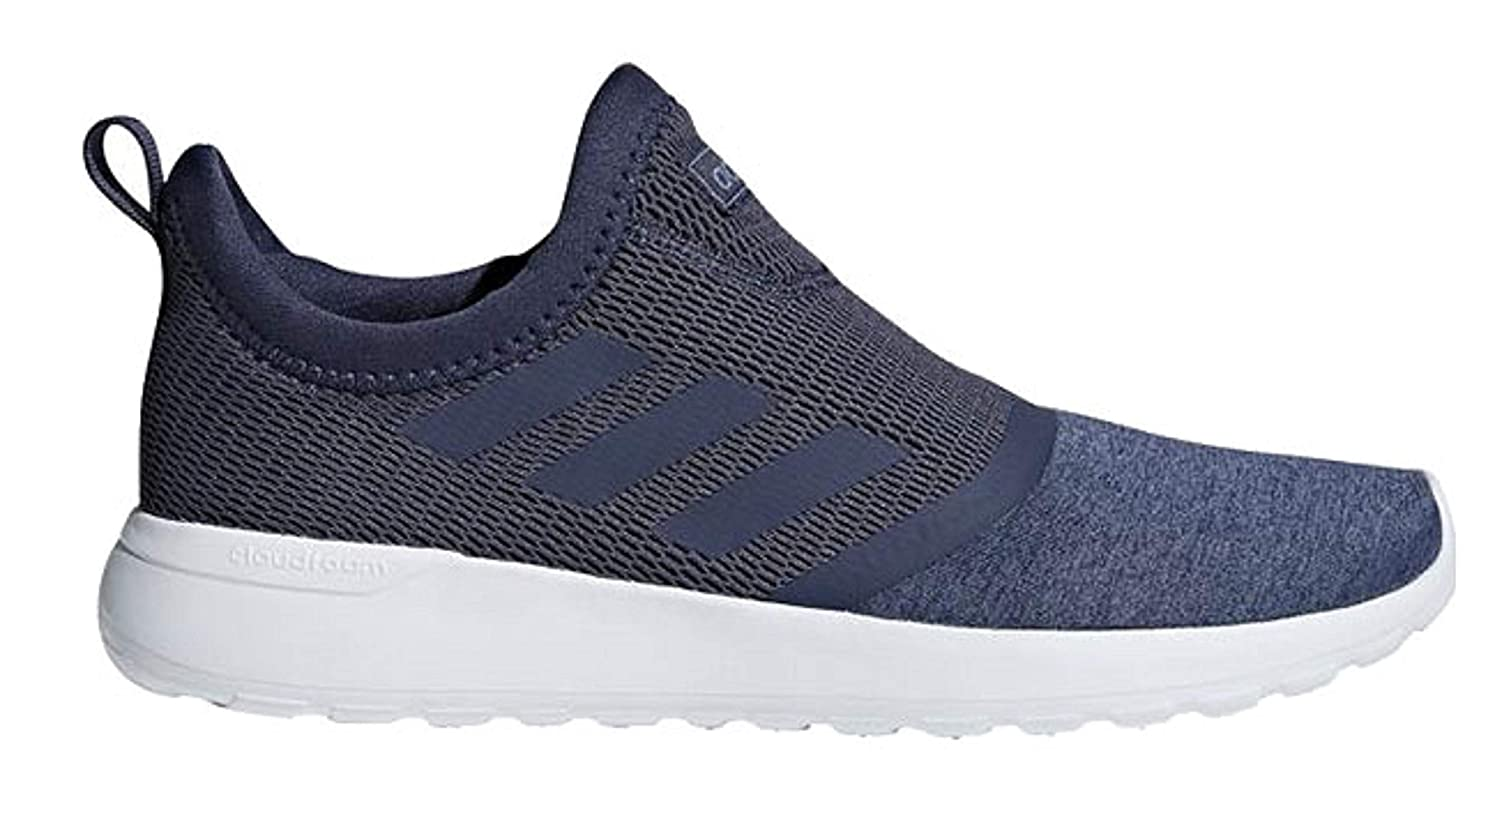 adidas Womens Cloudfoam Lite Racer Slip on Running Shoes TRABLU ...